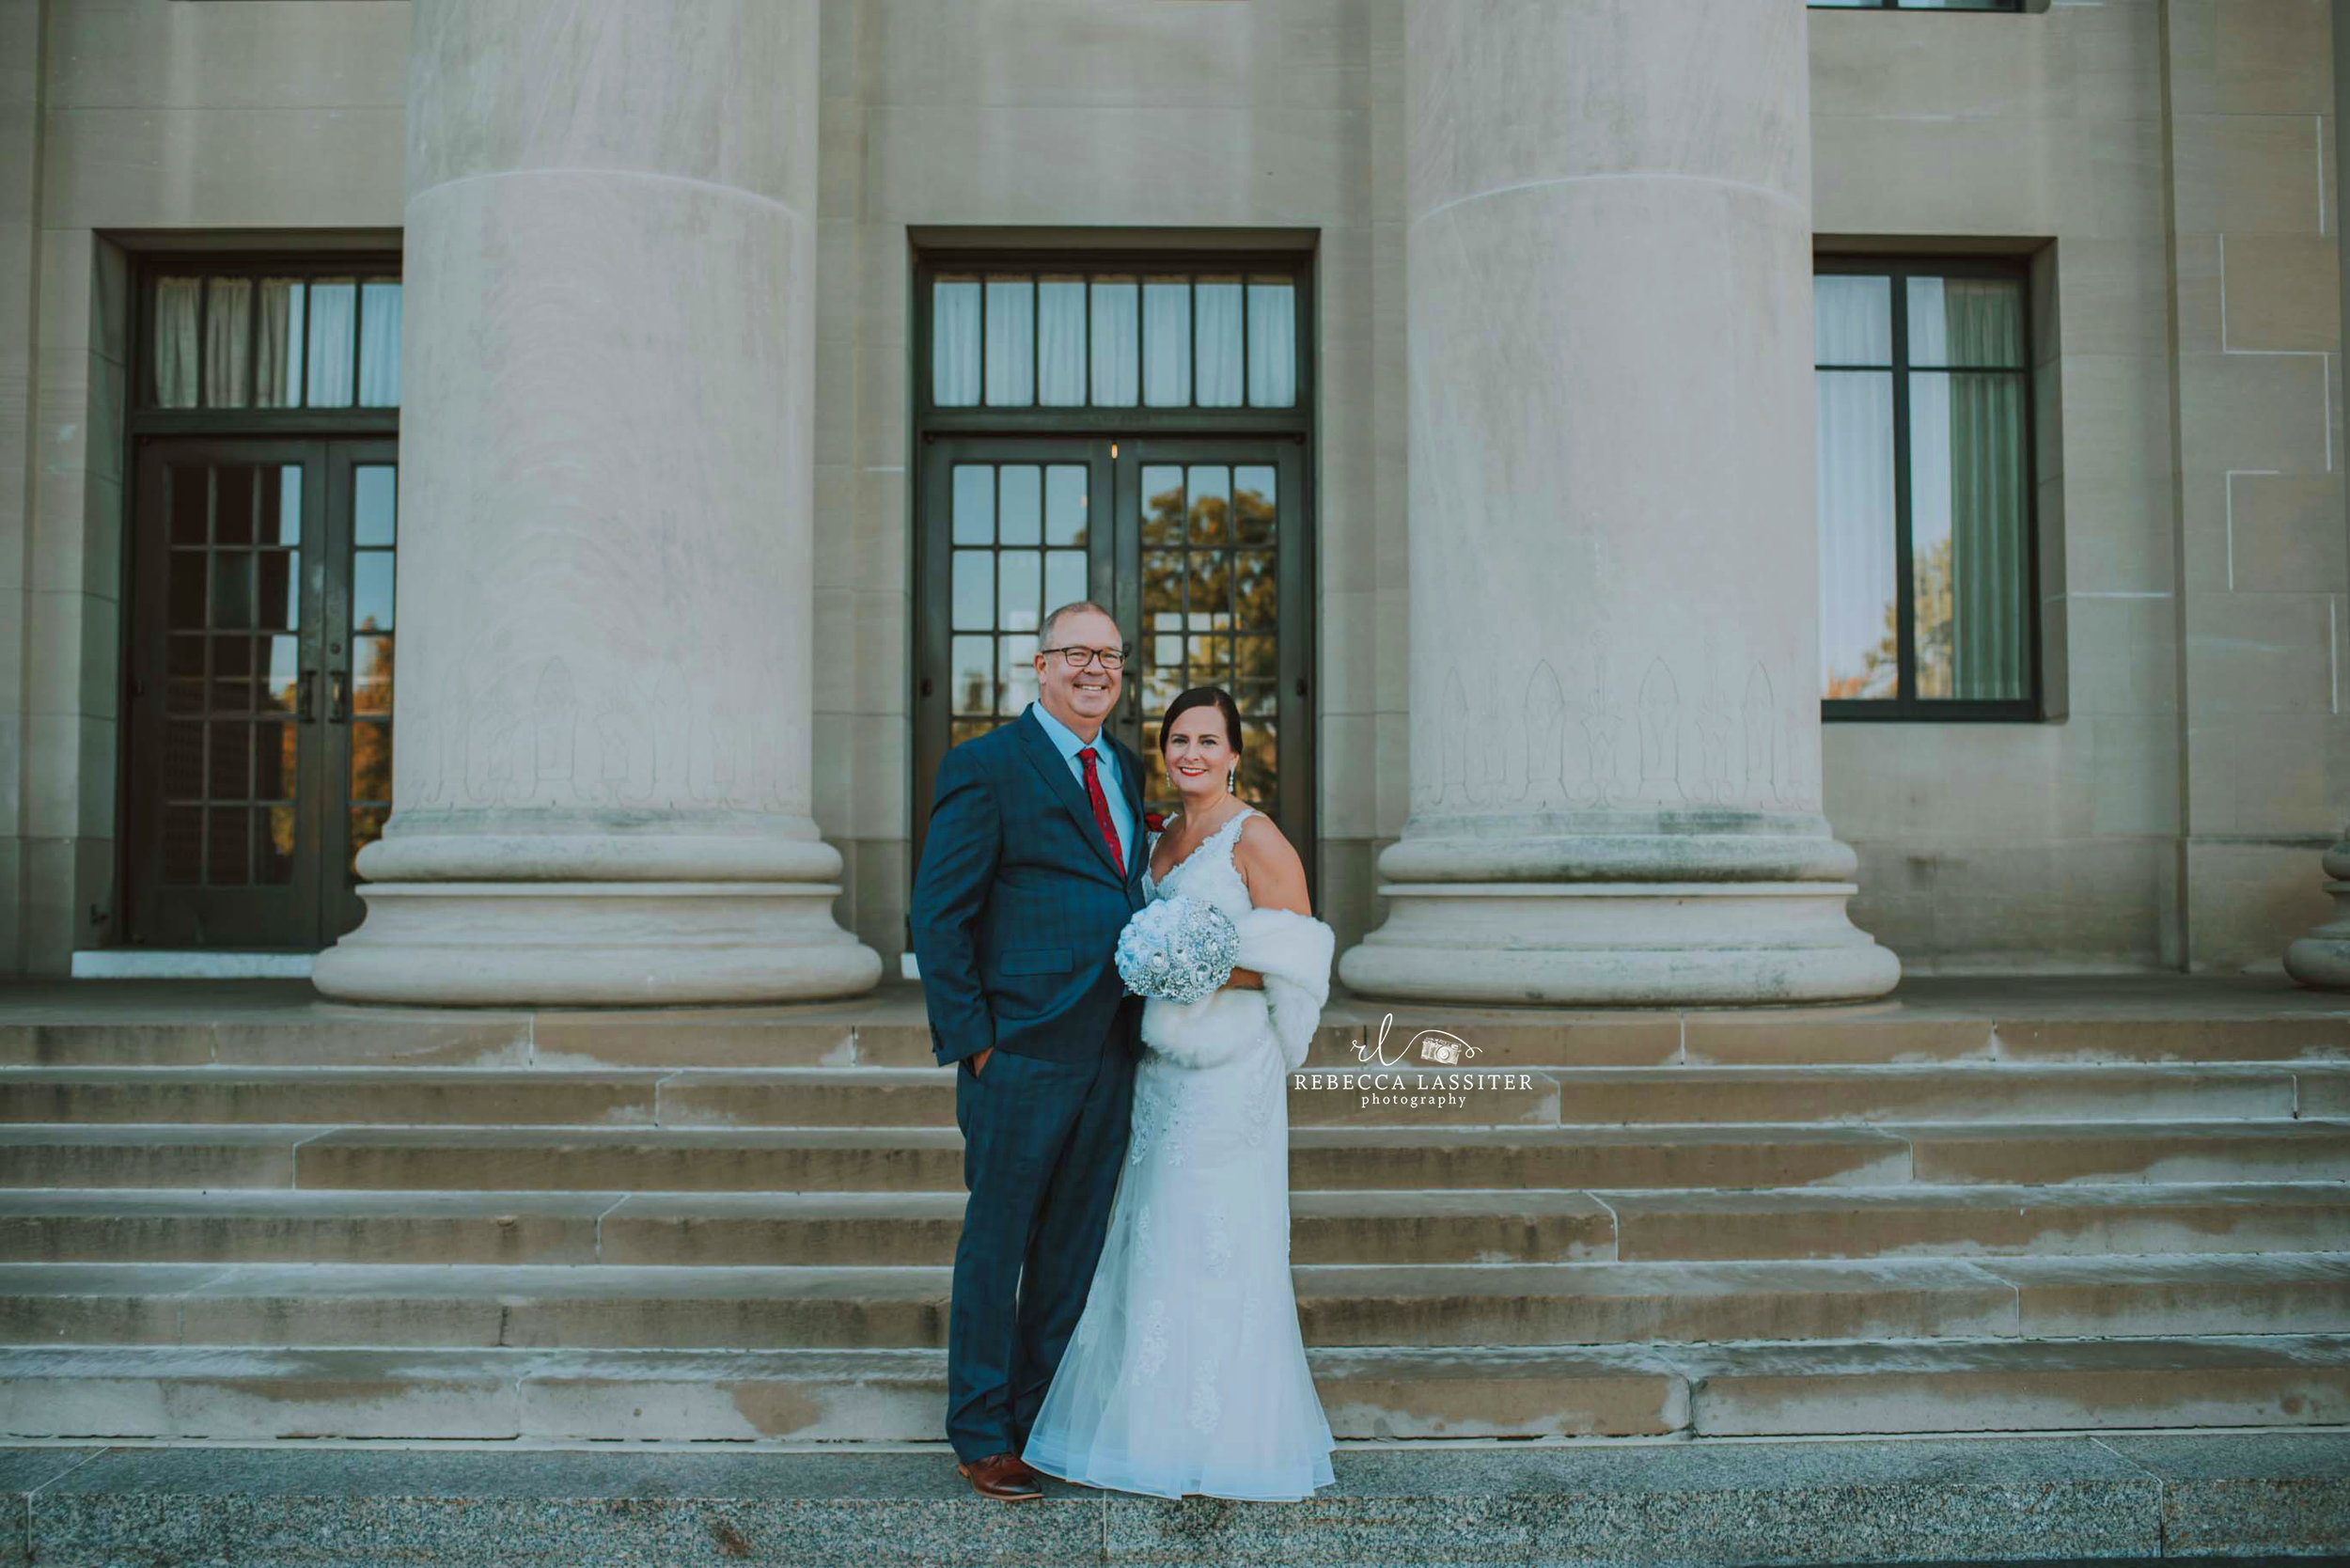 Kansas City Bride and Groom Portraits, Photographer